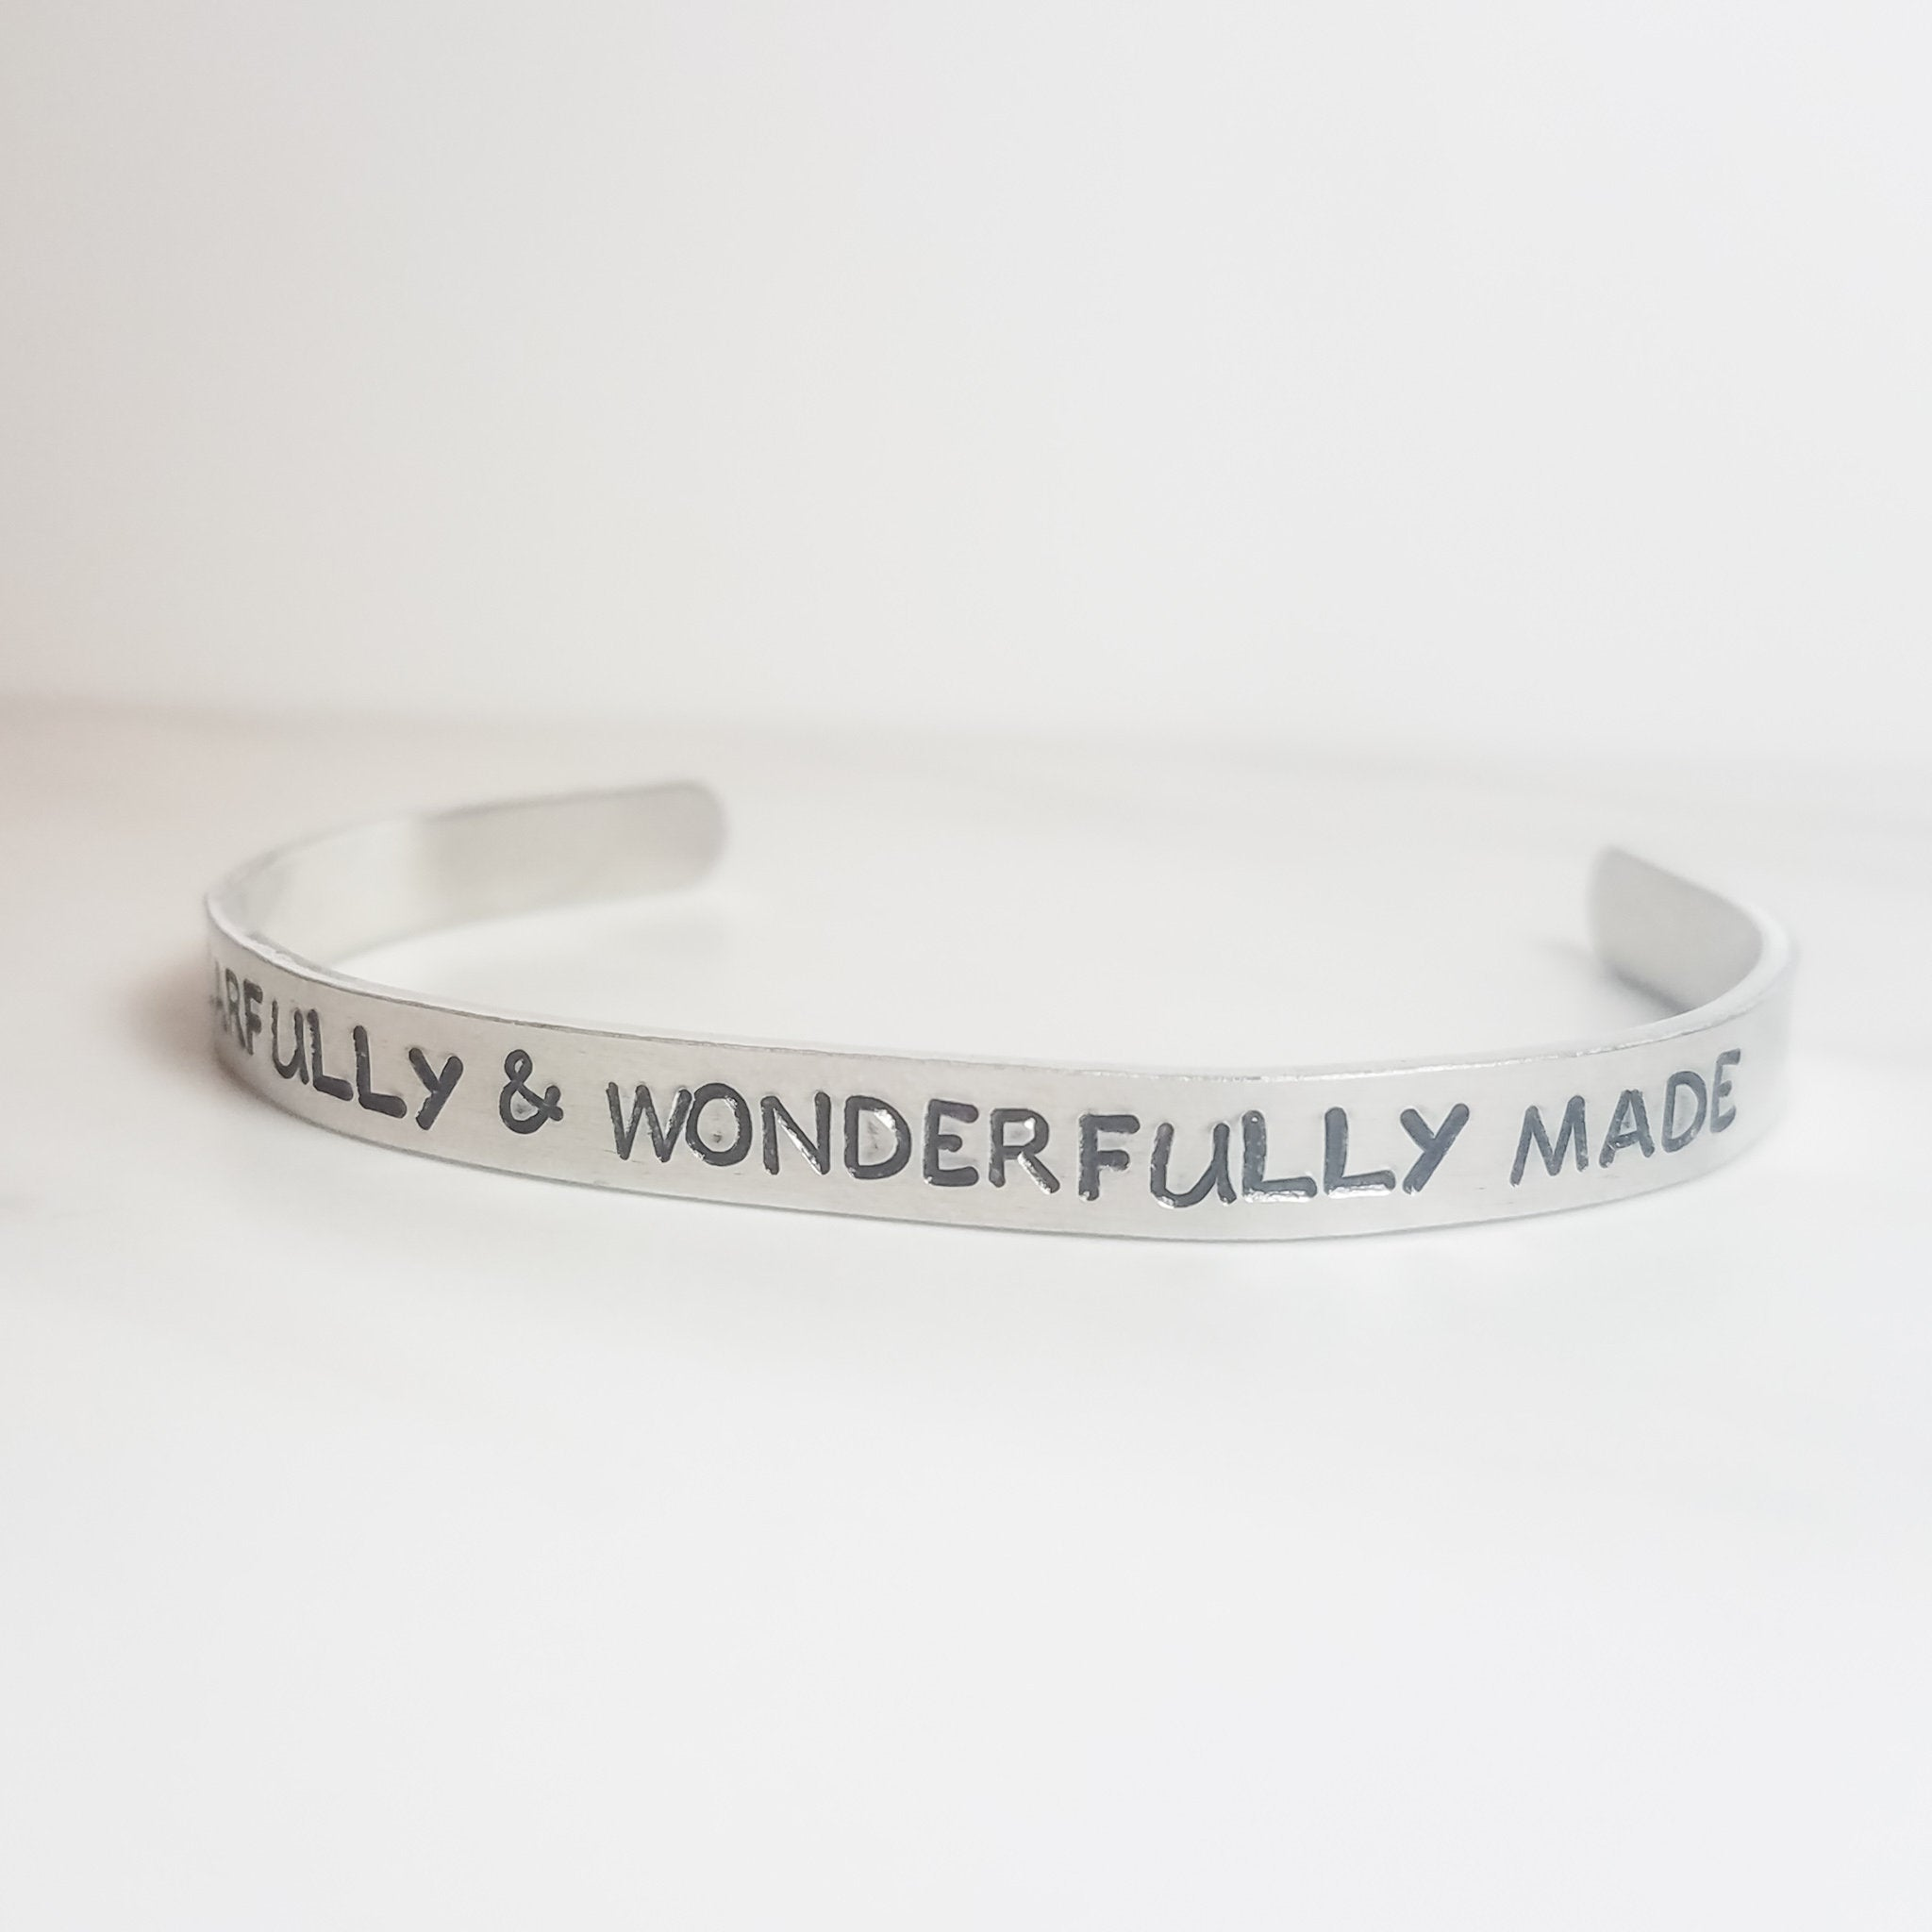 Fearfully and Wonderfully Made cuff bracelet